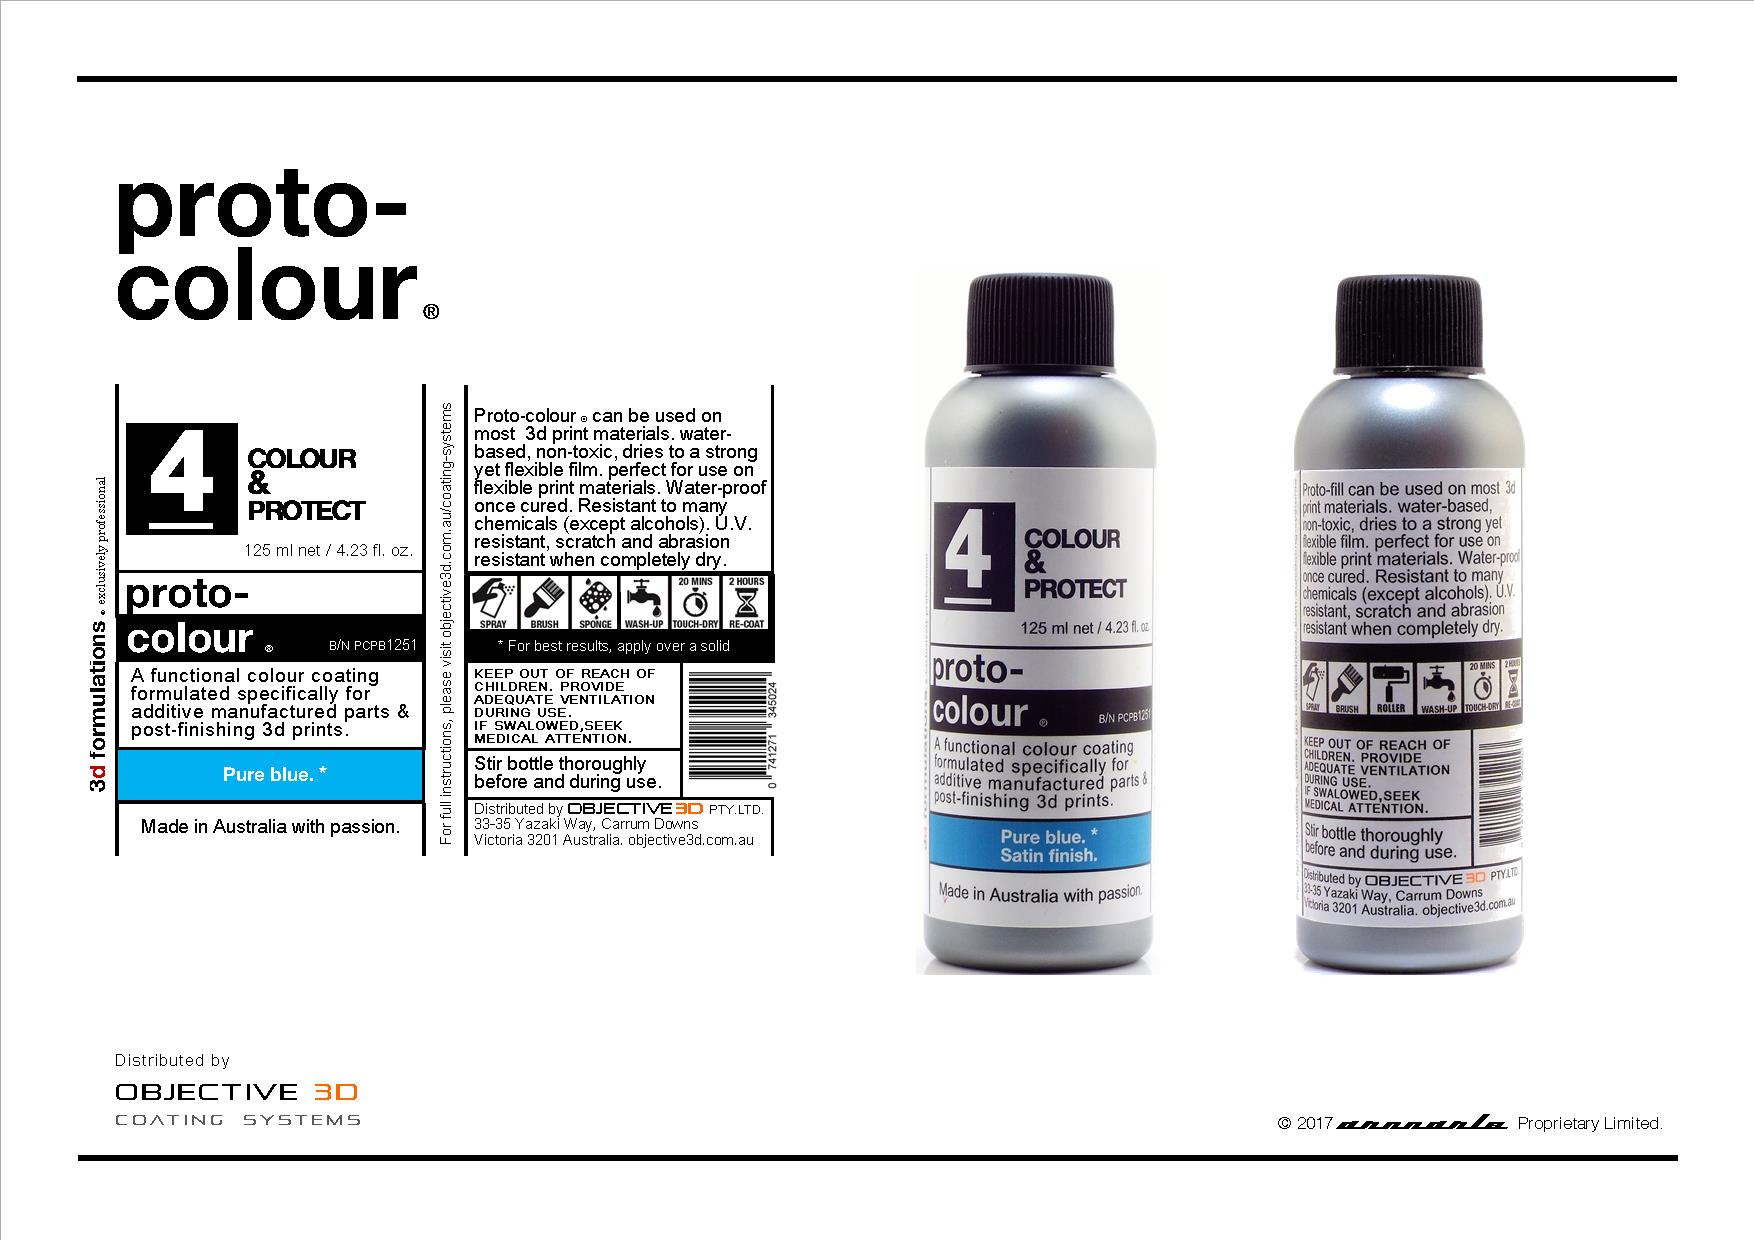 Sealant To Make 3d Part Easy To Clean